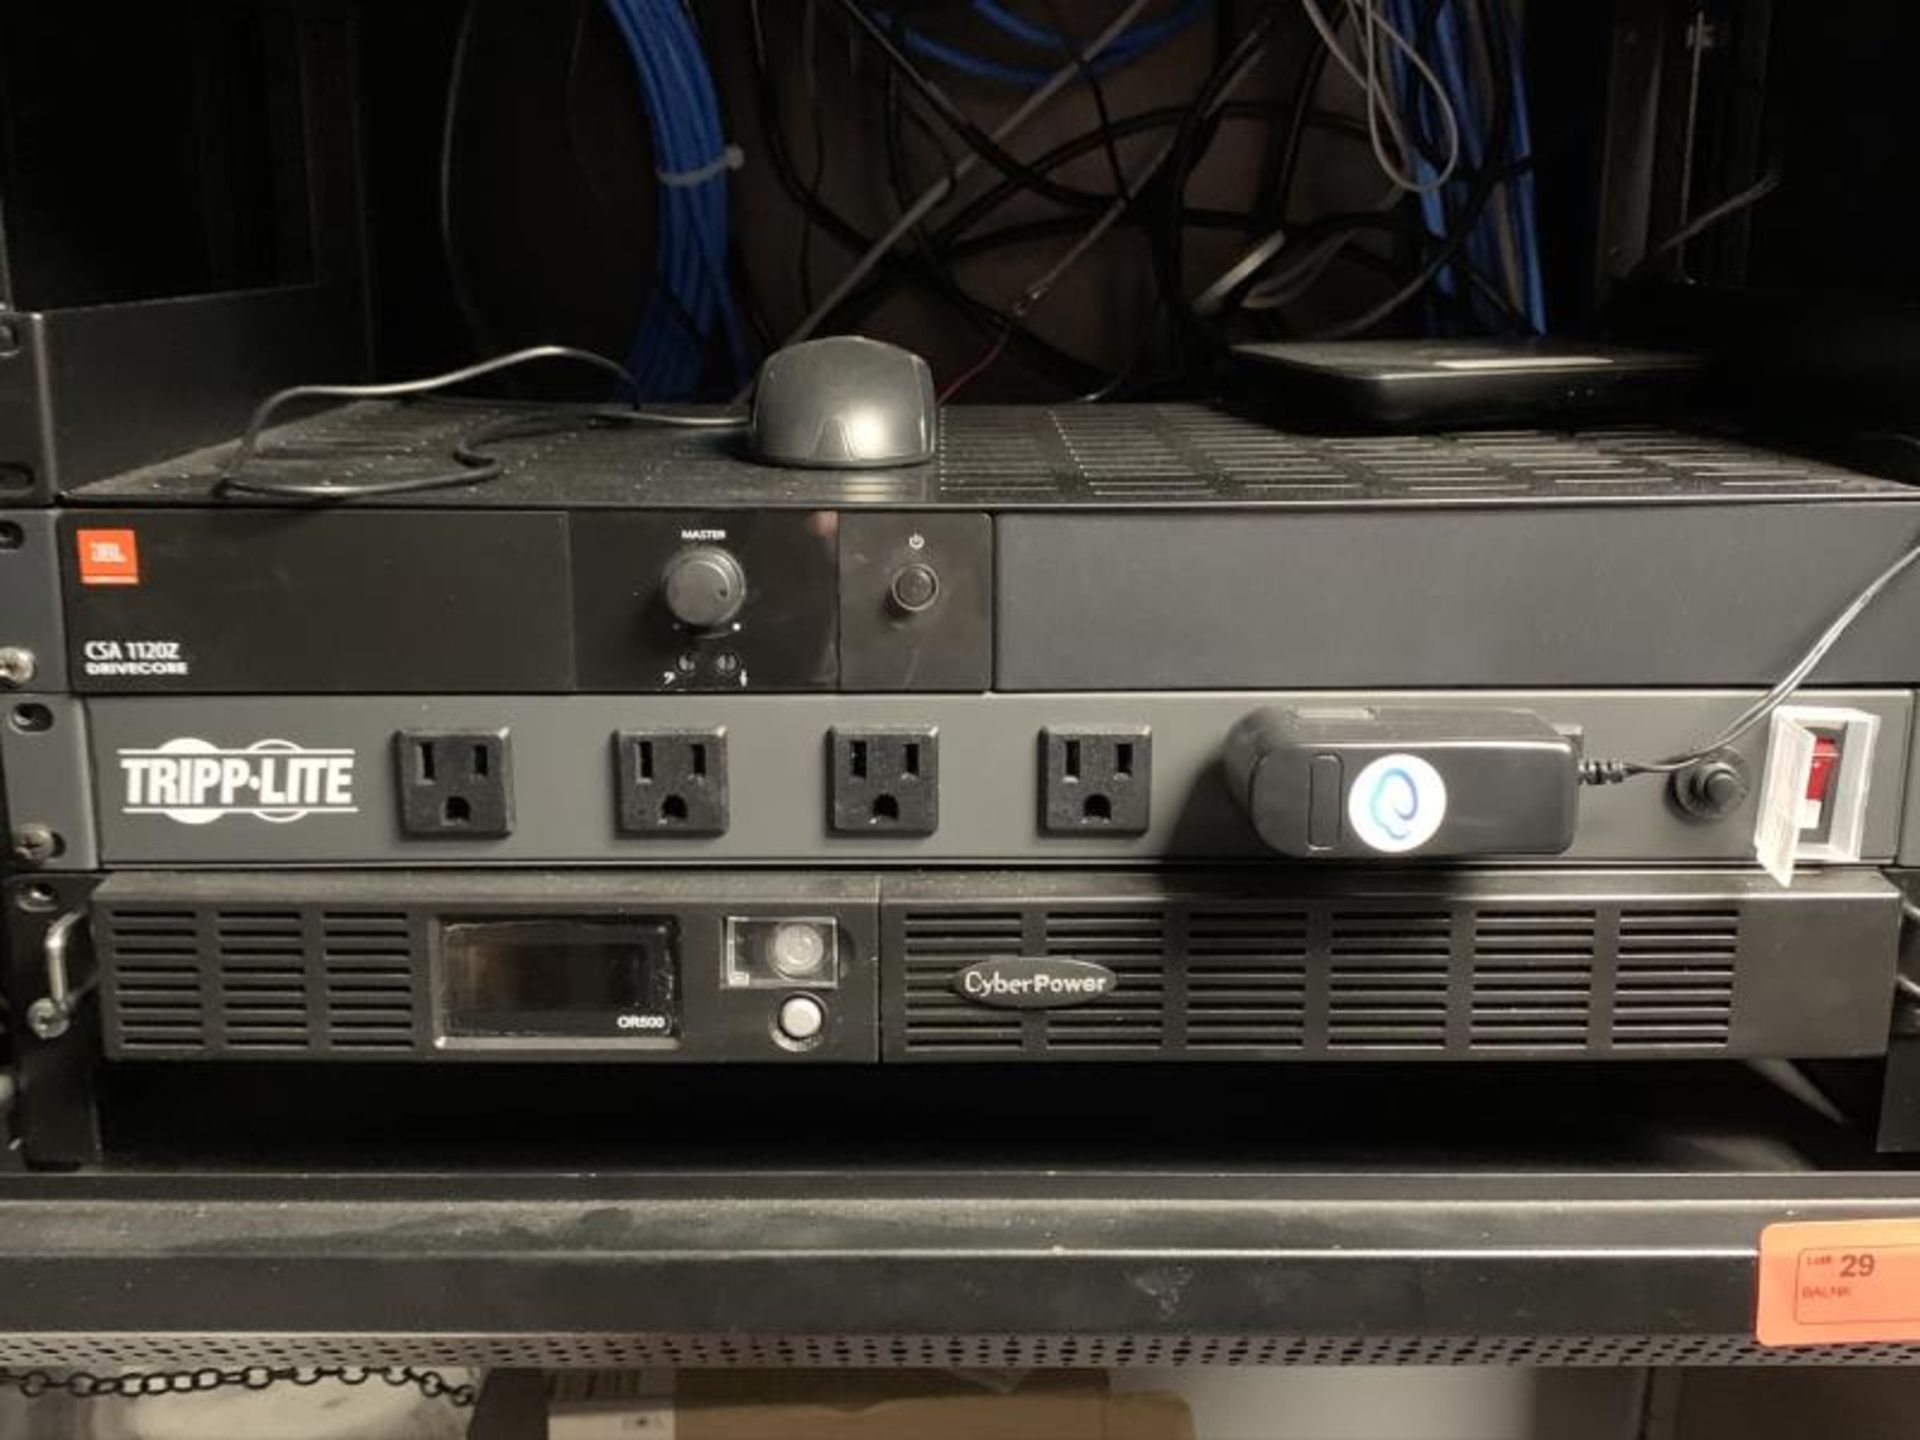 IT Cabinet, Wall Mounted w/ Cyberpower OR500, Tripp-Lite, UBL CSA 1120Z, TP-Link TL-SG1016 16 Port - Image 2 of 3